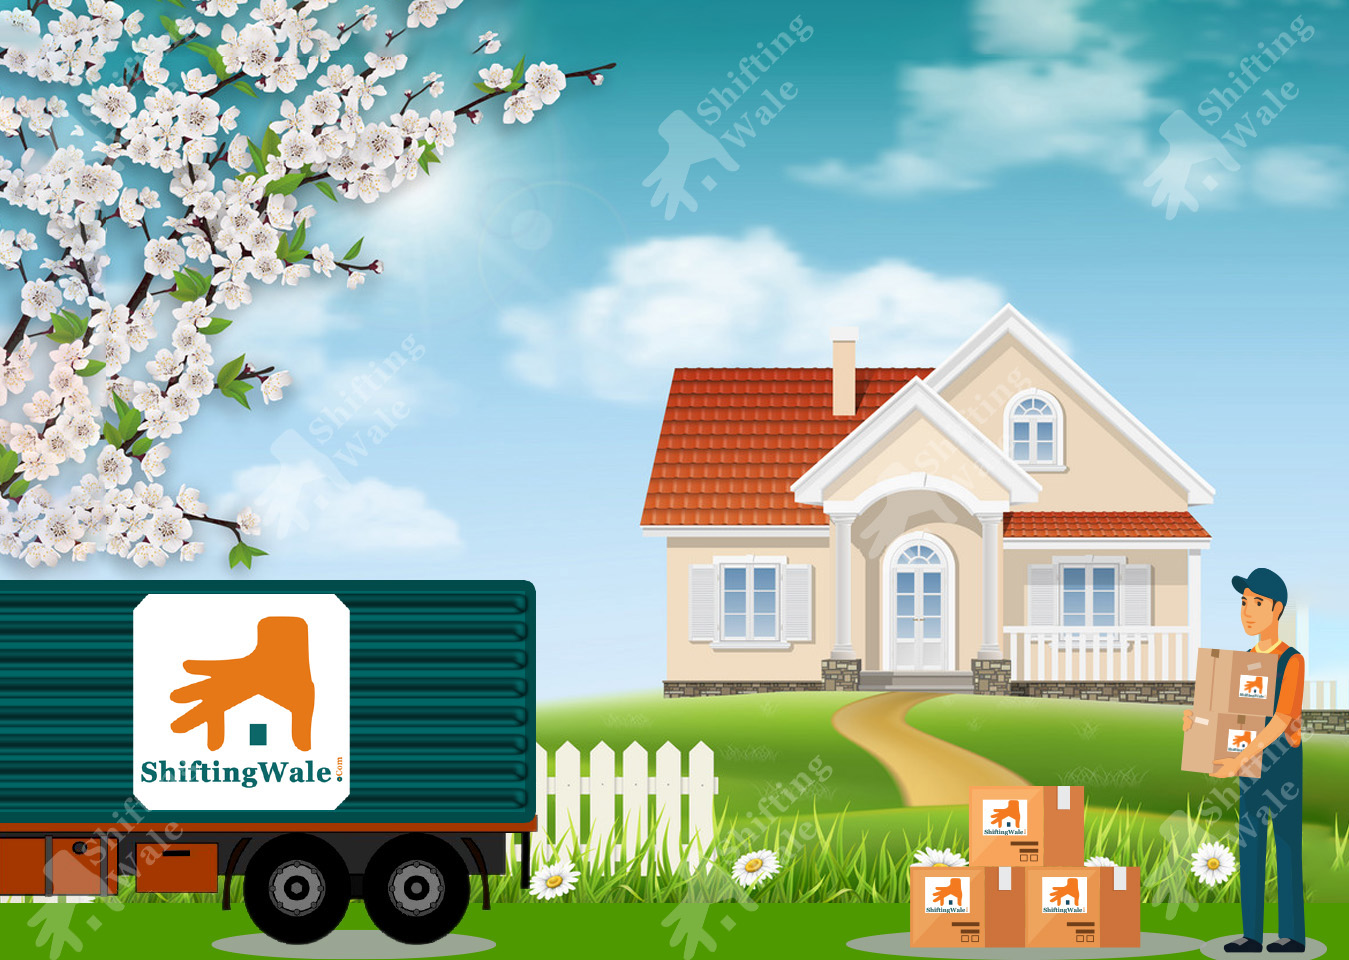 Mumbai to Raipur Trusted Packers and Movers Services Gest Best Packing